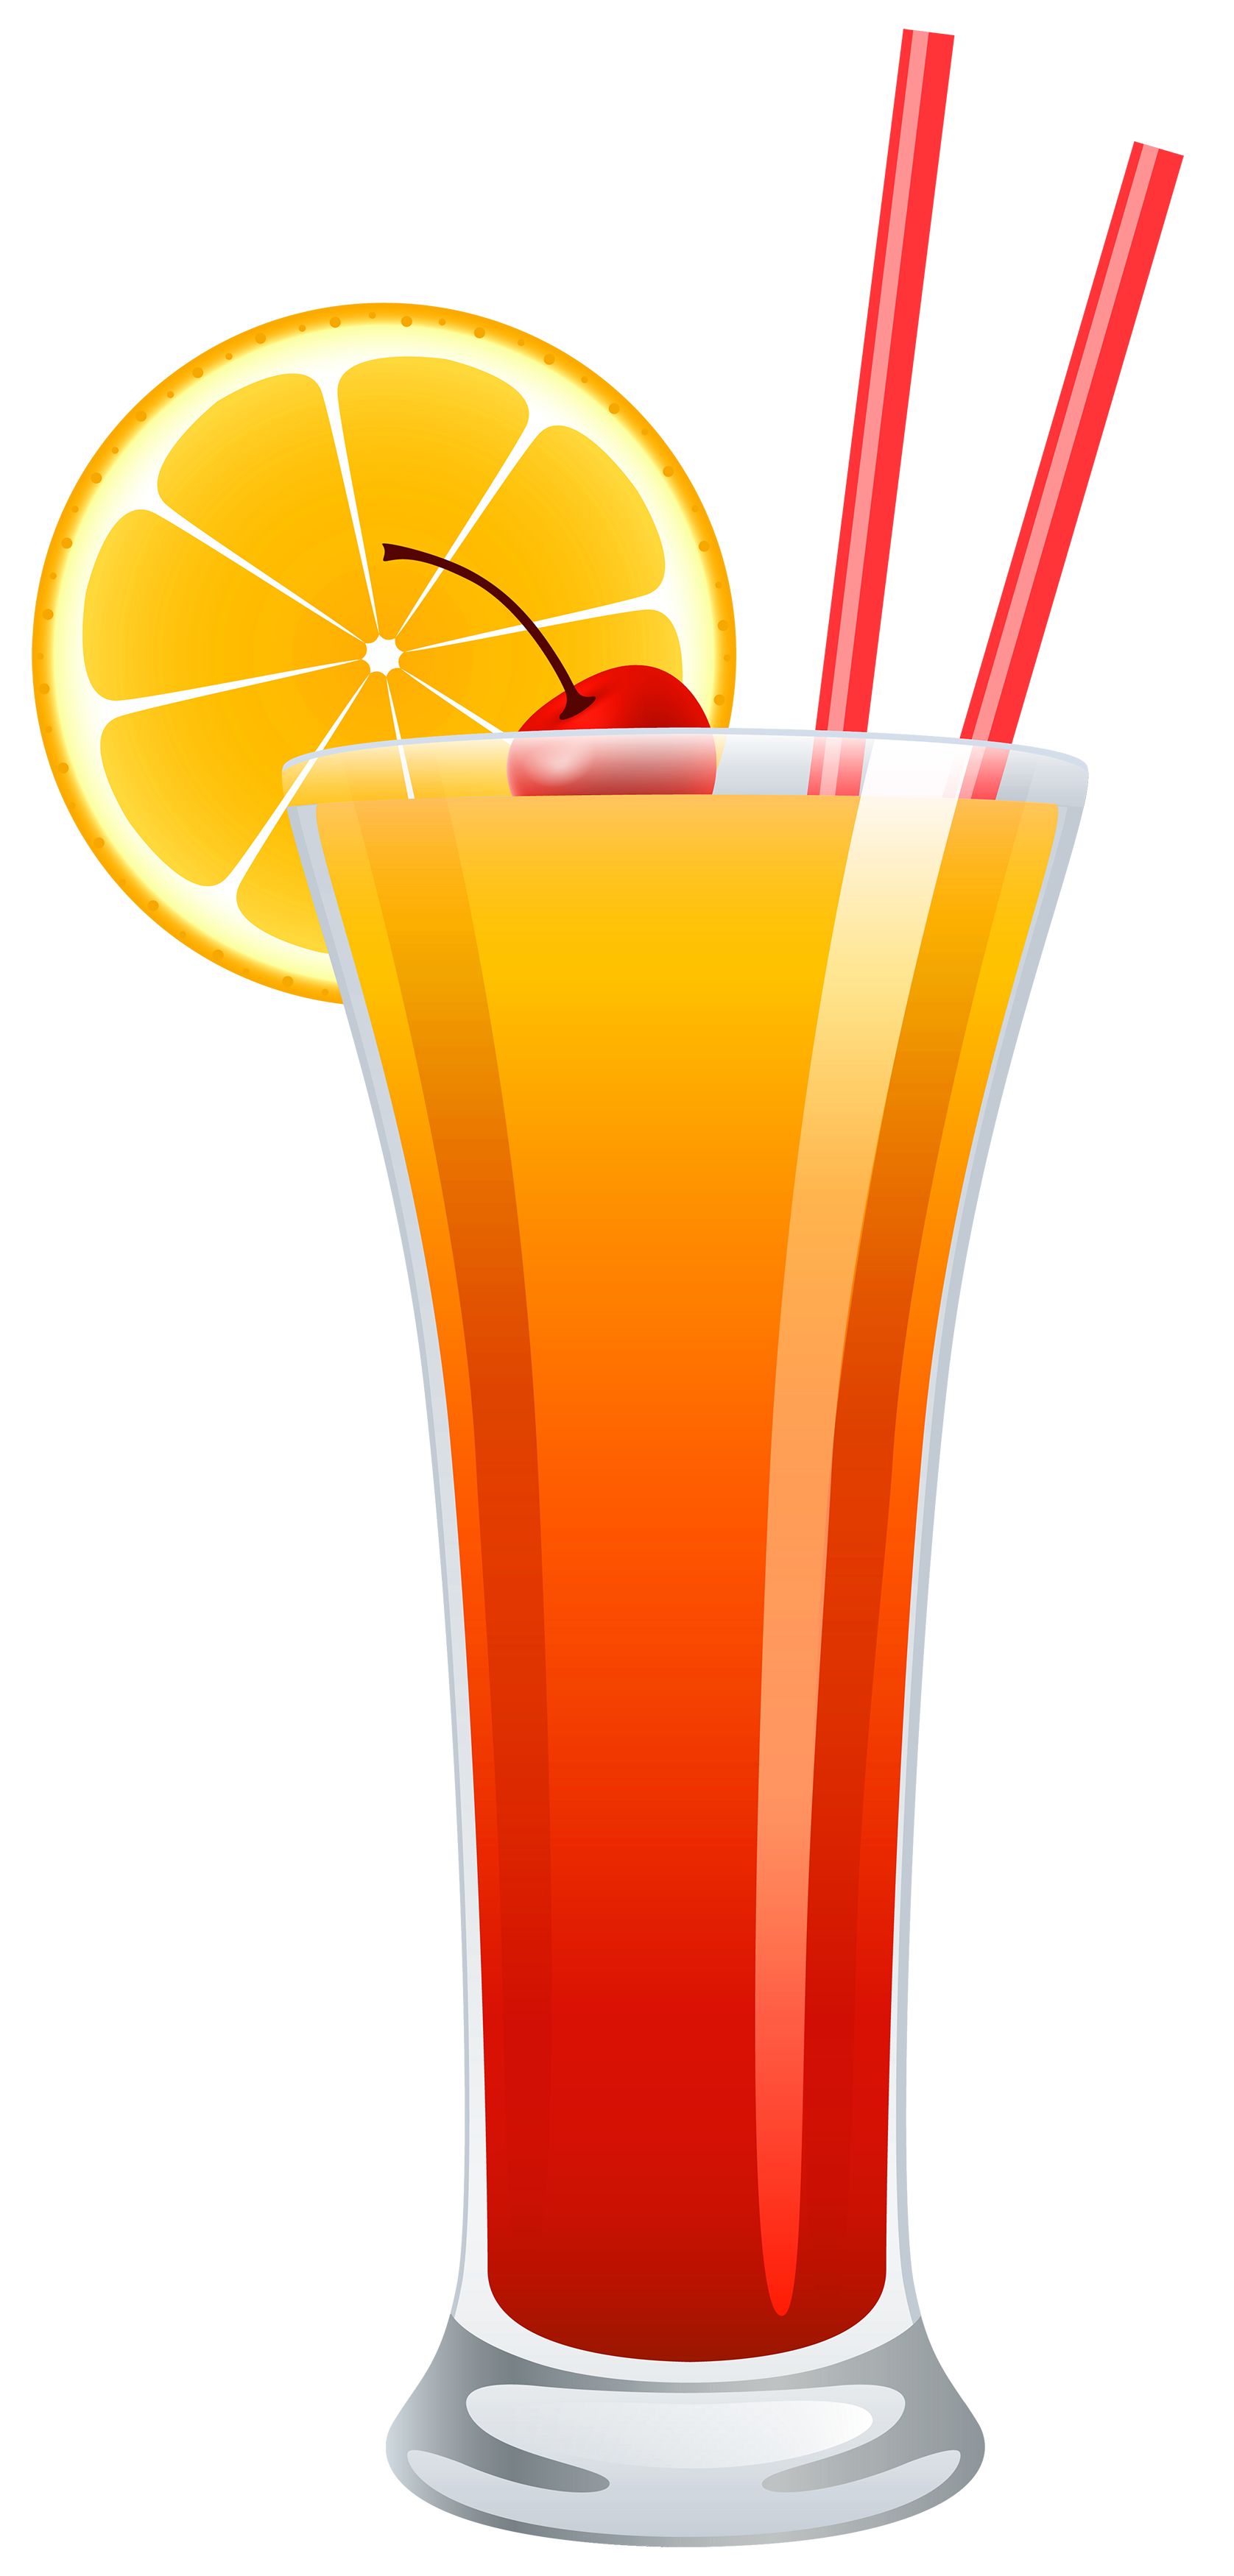 Cocktail Png Image Alcoholic Drinks Clipart Clip Art Cocktails